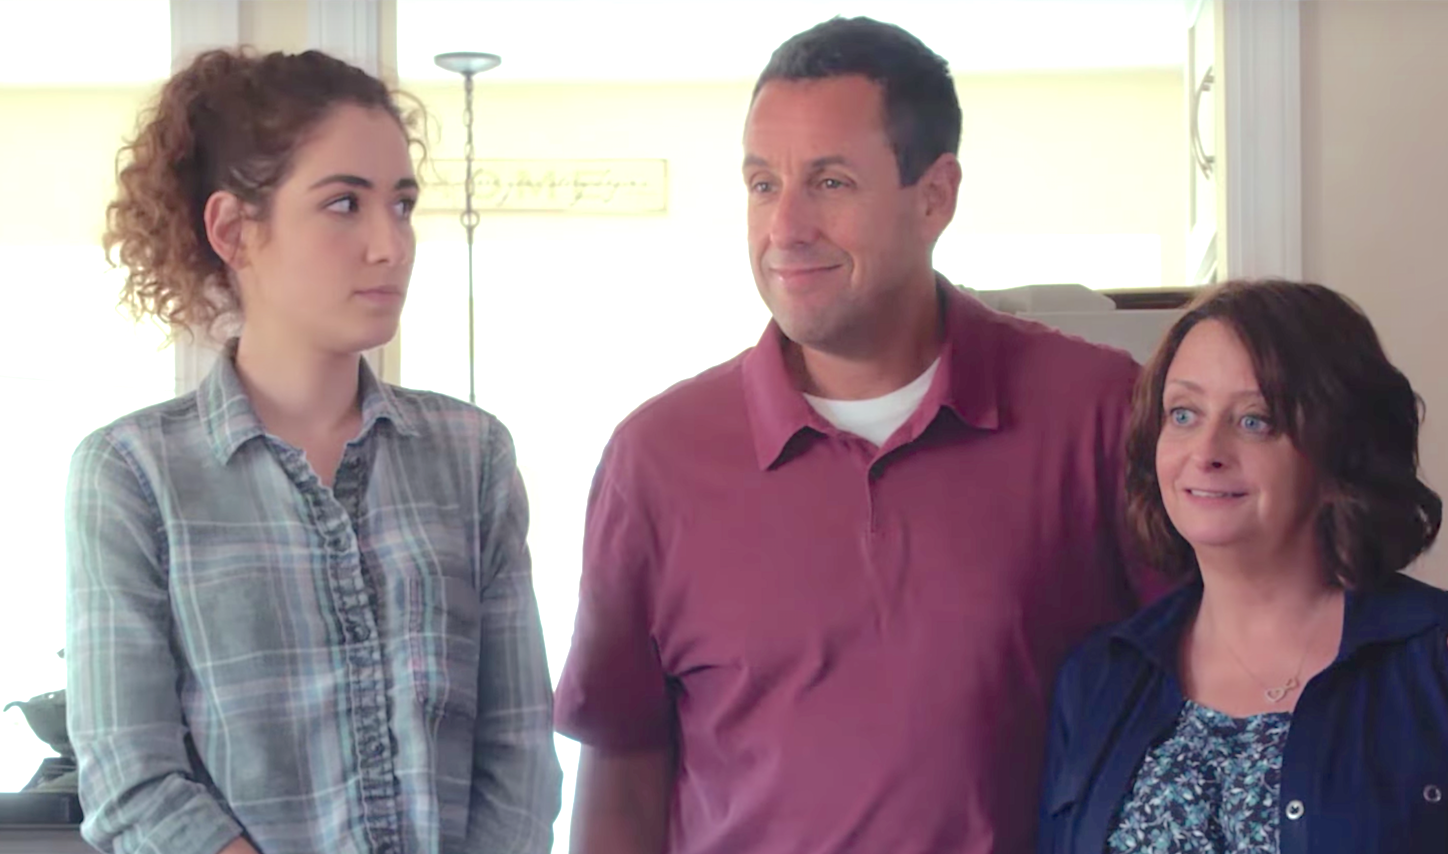 The Week Of (2018), Allison Strong, Adam Sandler, Rachel Dratch